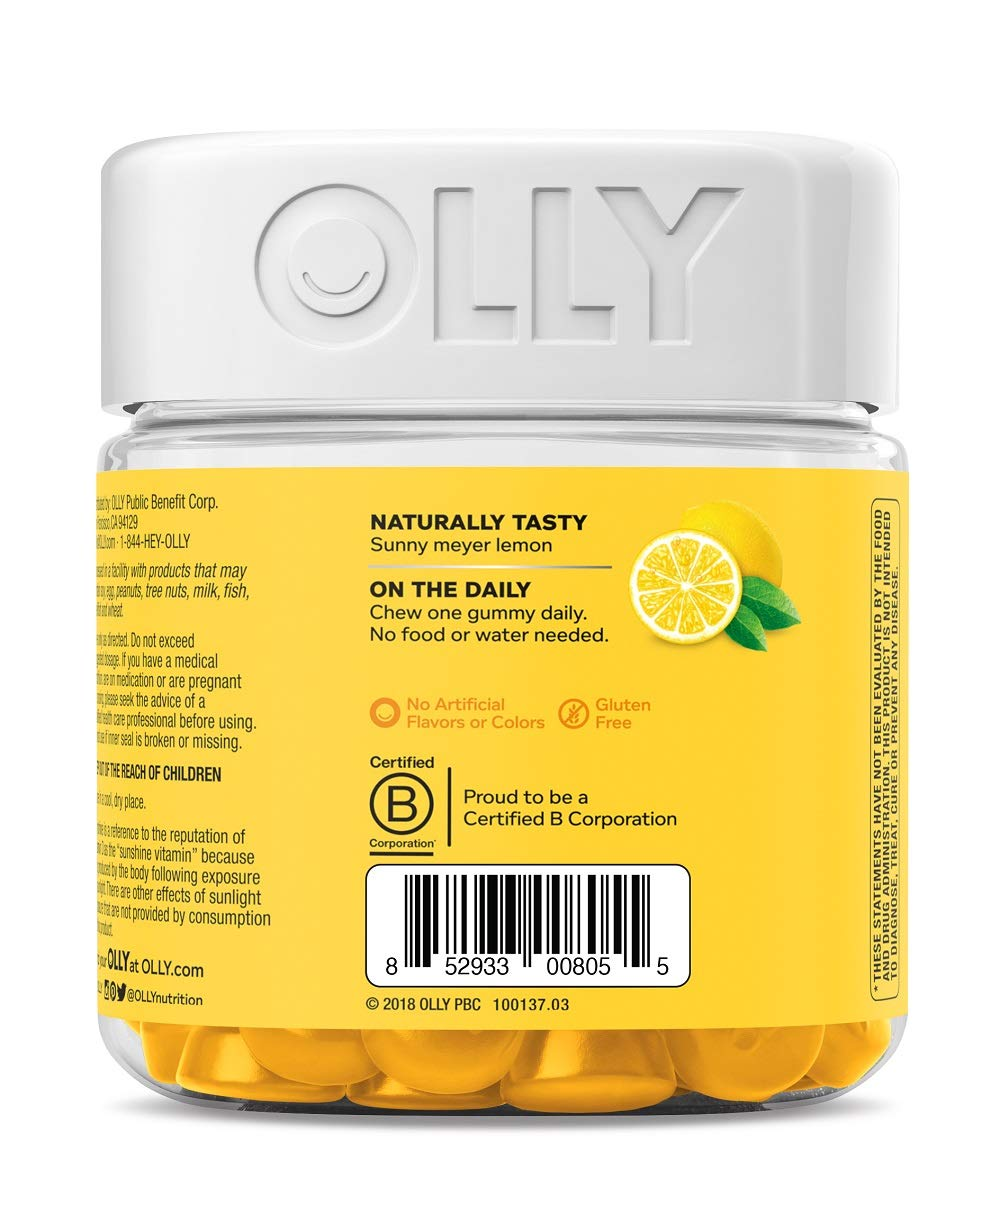 OLLY Sunny Vitamin D Gummy, 100 Day Supply (100 Gummies), Luminous Lemon, 2000 IU Vitamin D3, Chewable Supplement by Olly (Image #4)